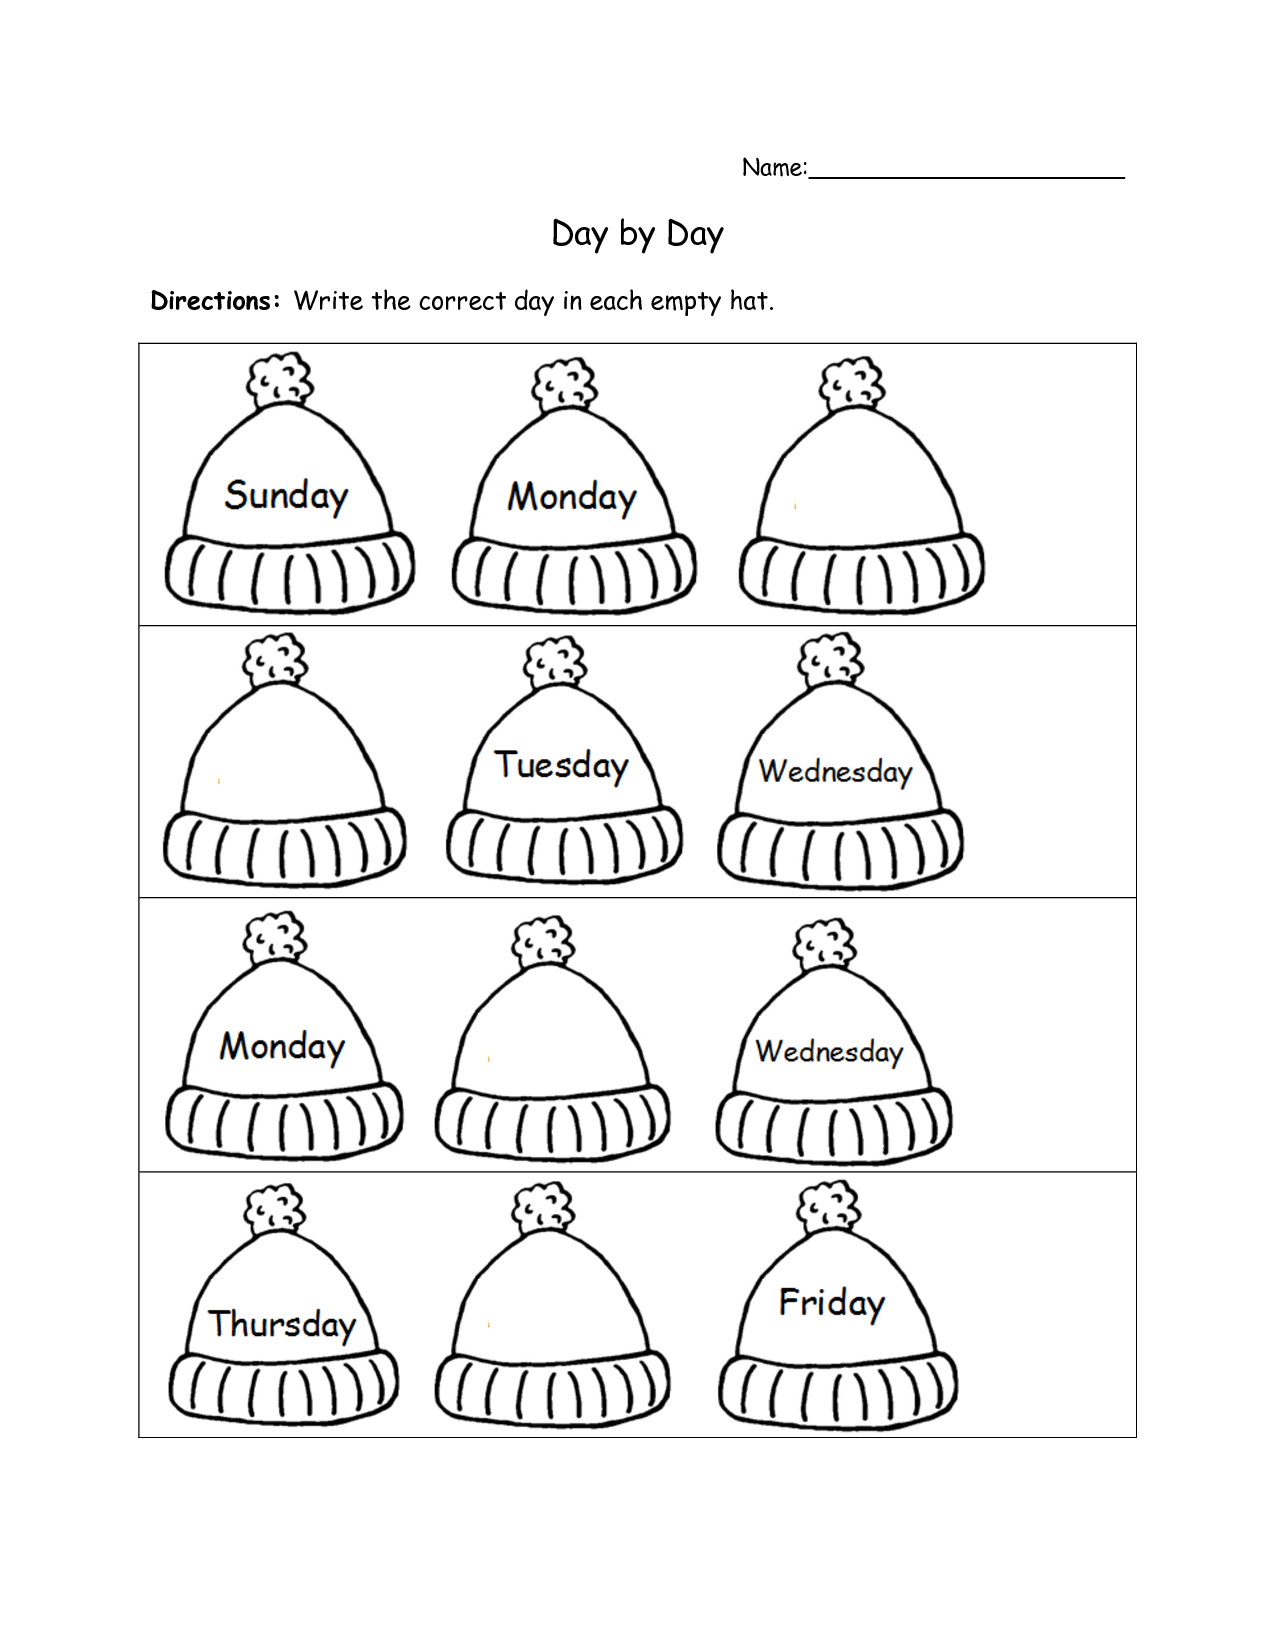 days-of-the-week-worksheet-for-kid